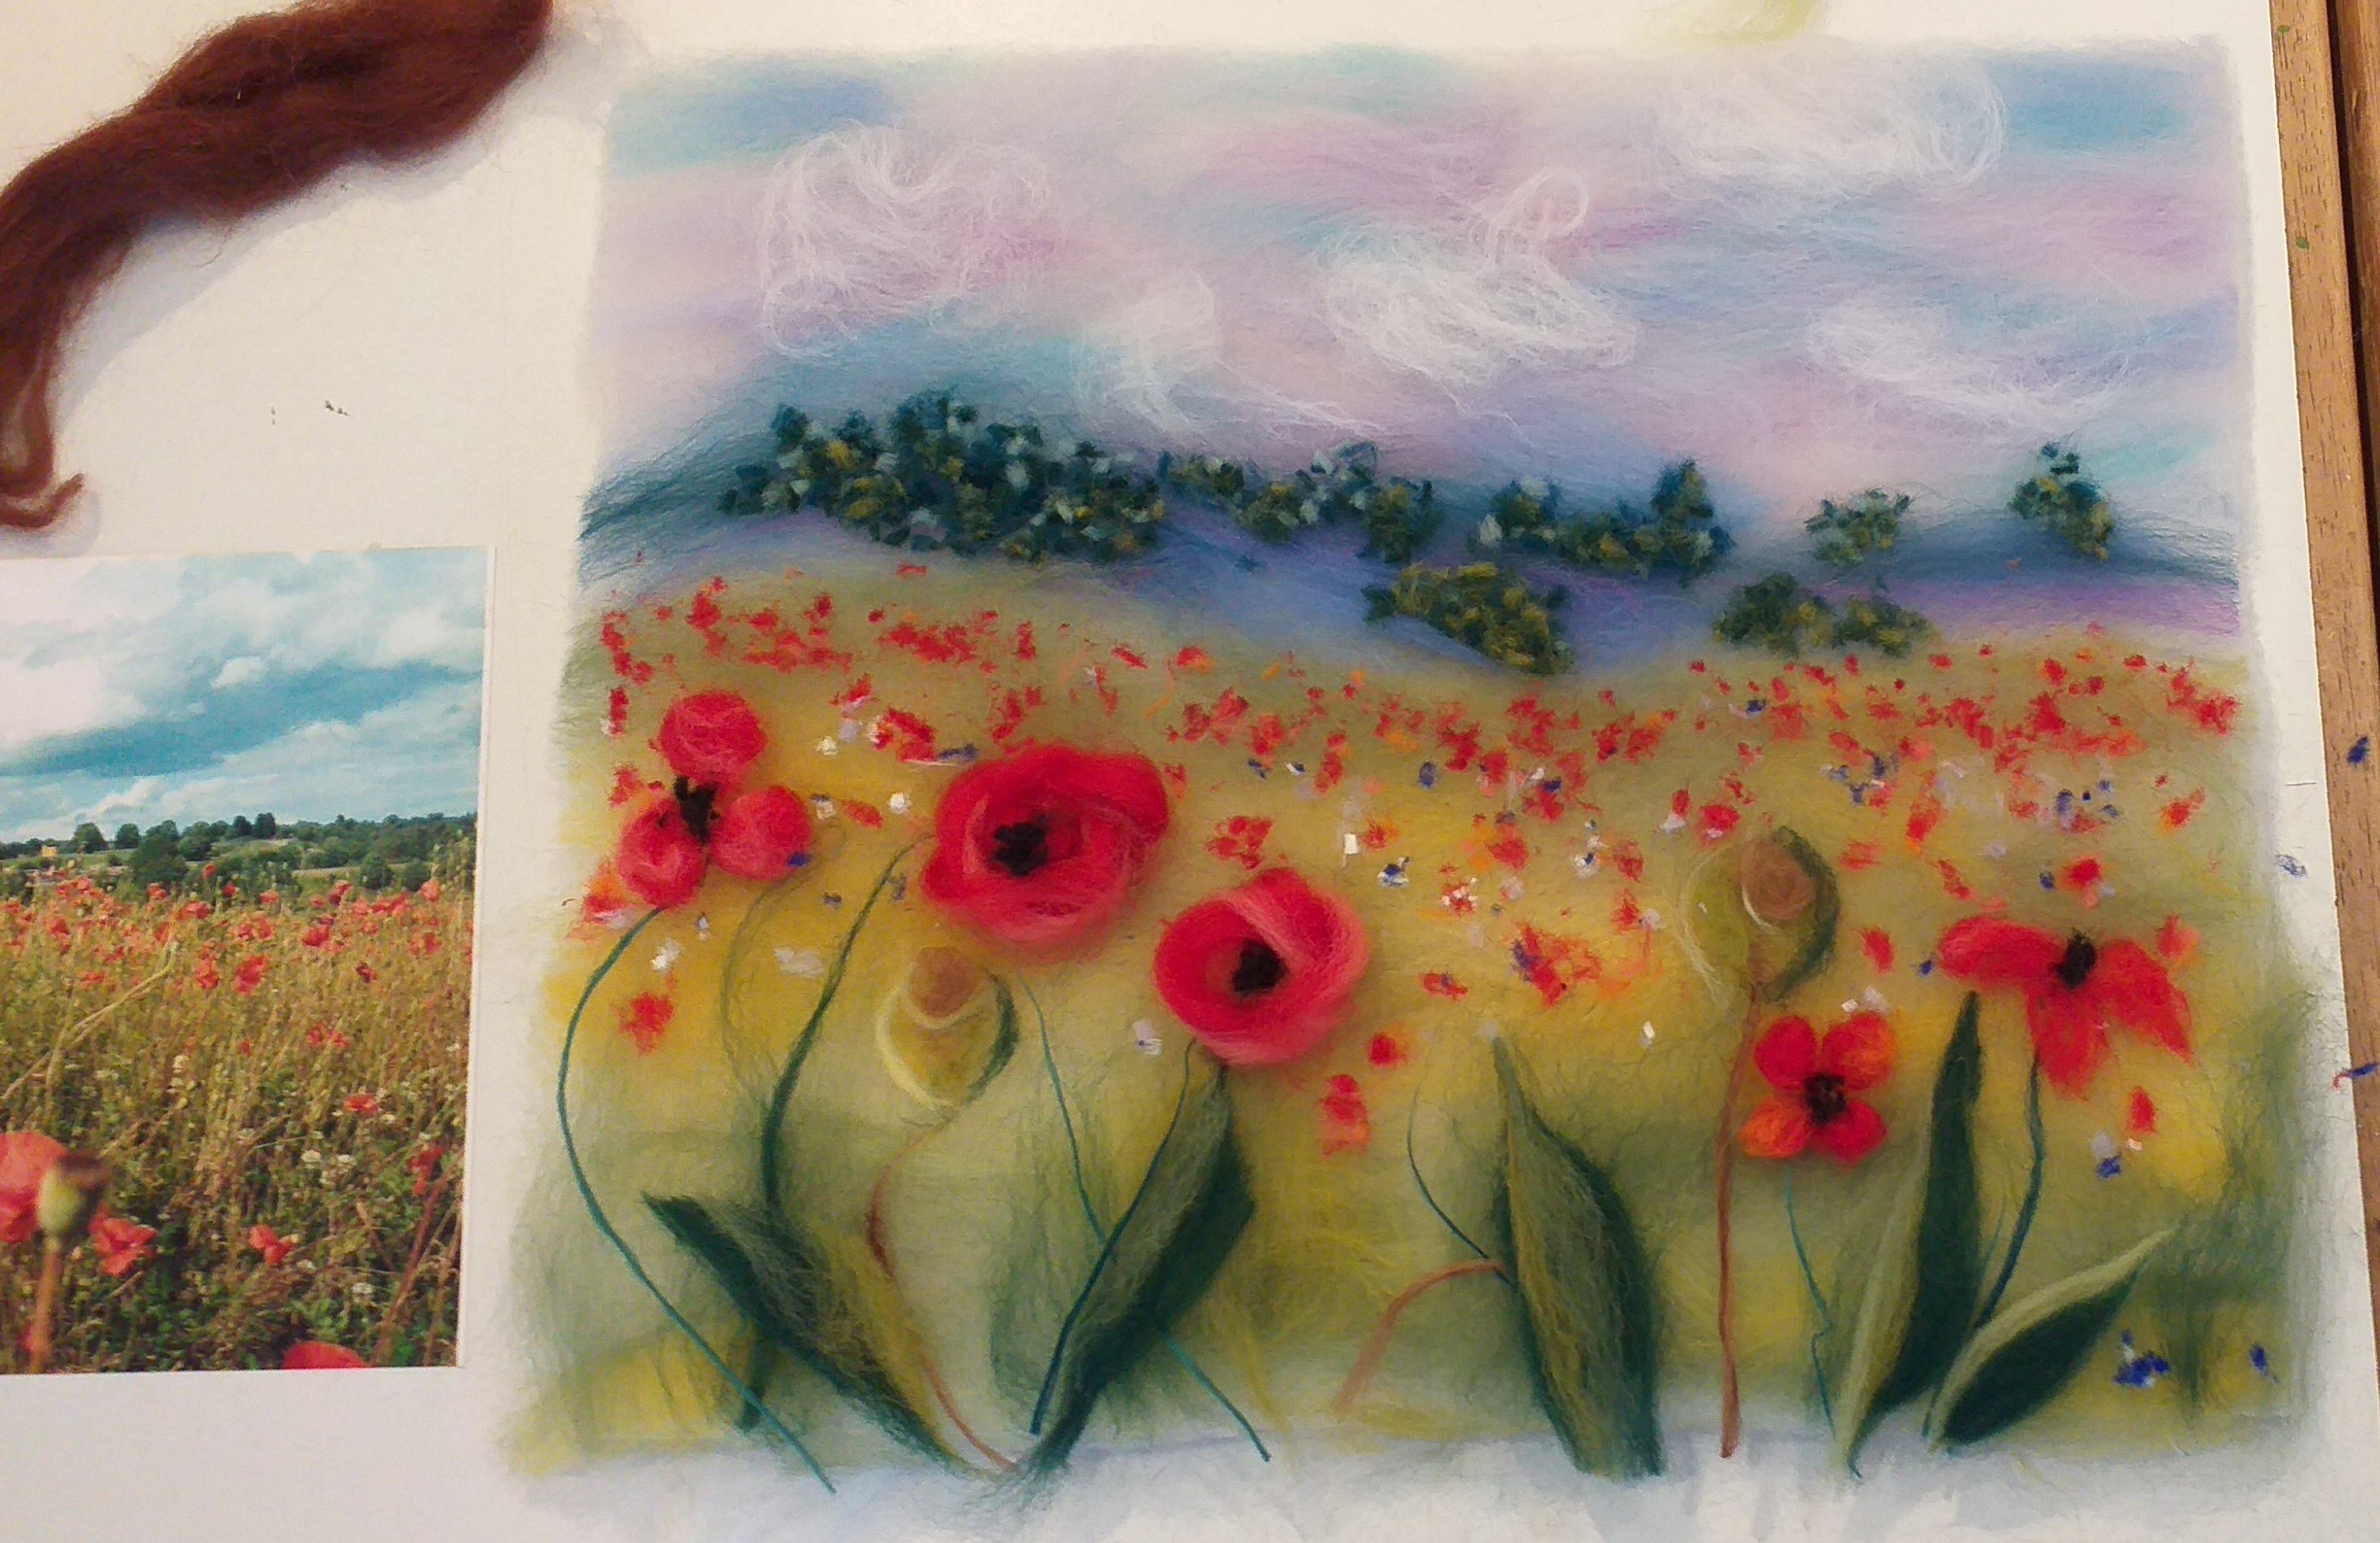 Poppy fields wool painting is being created by Chrys Hendi-Warner at Bevere Art Gallery